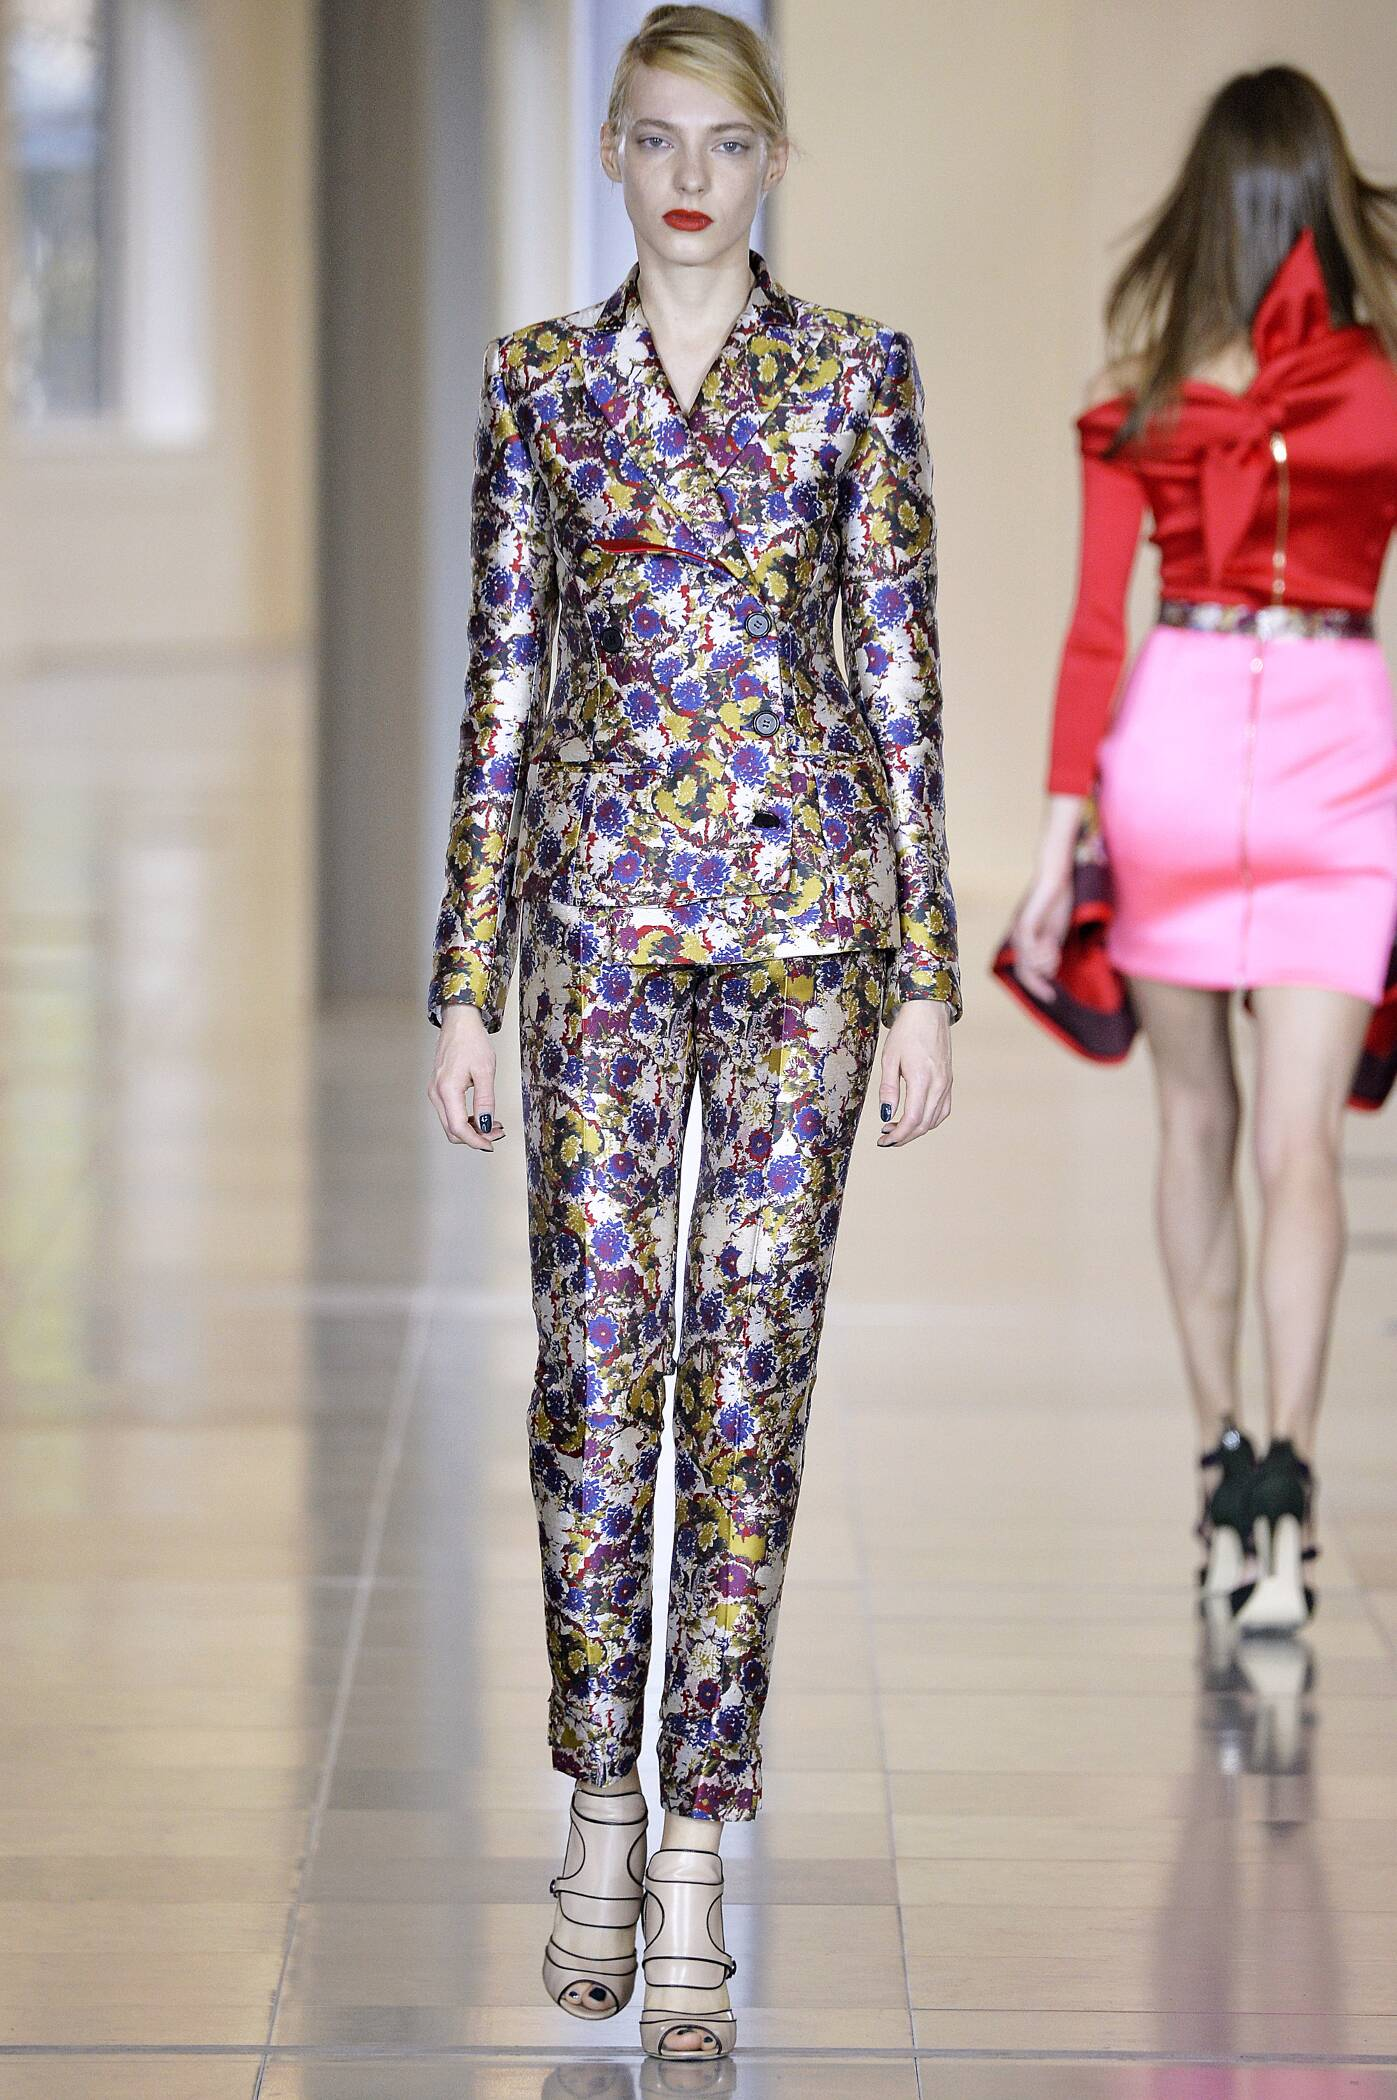 Catwalk Antonio Berardi Collection Fashion Show Winter 2015